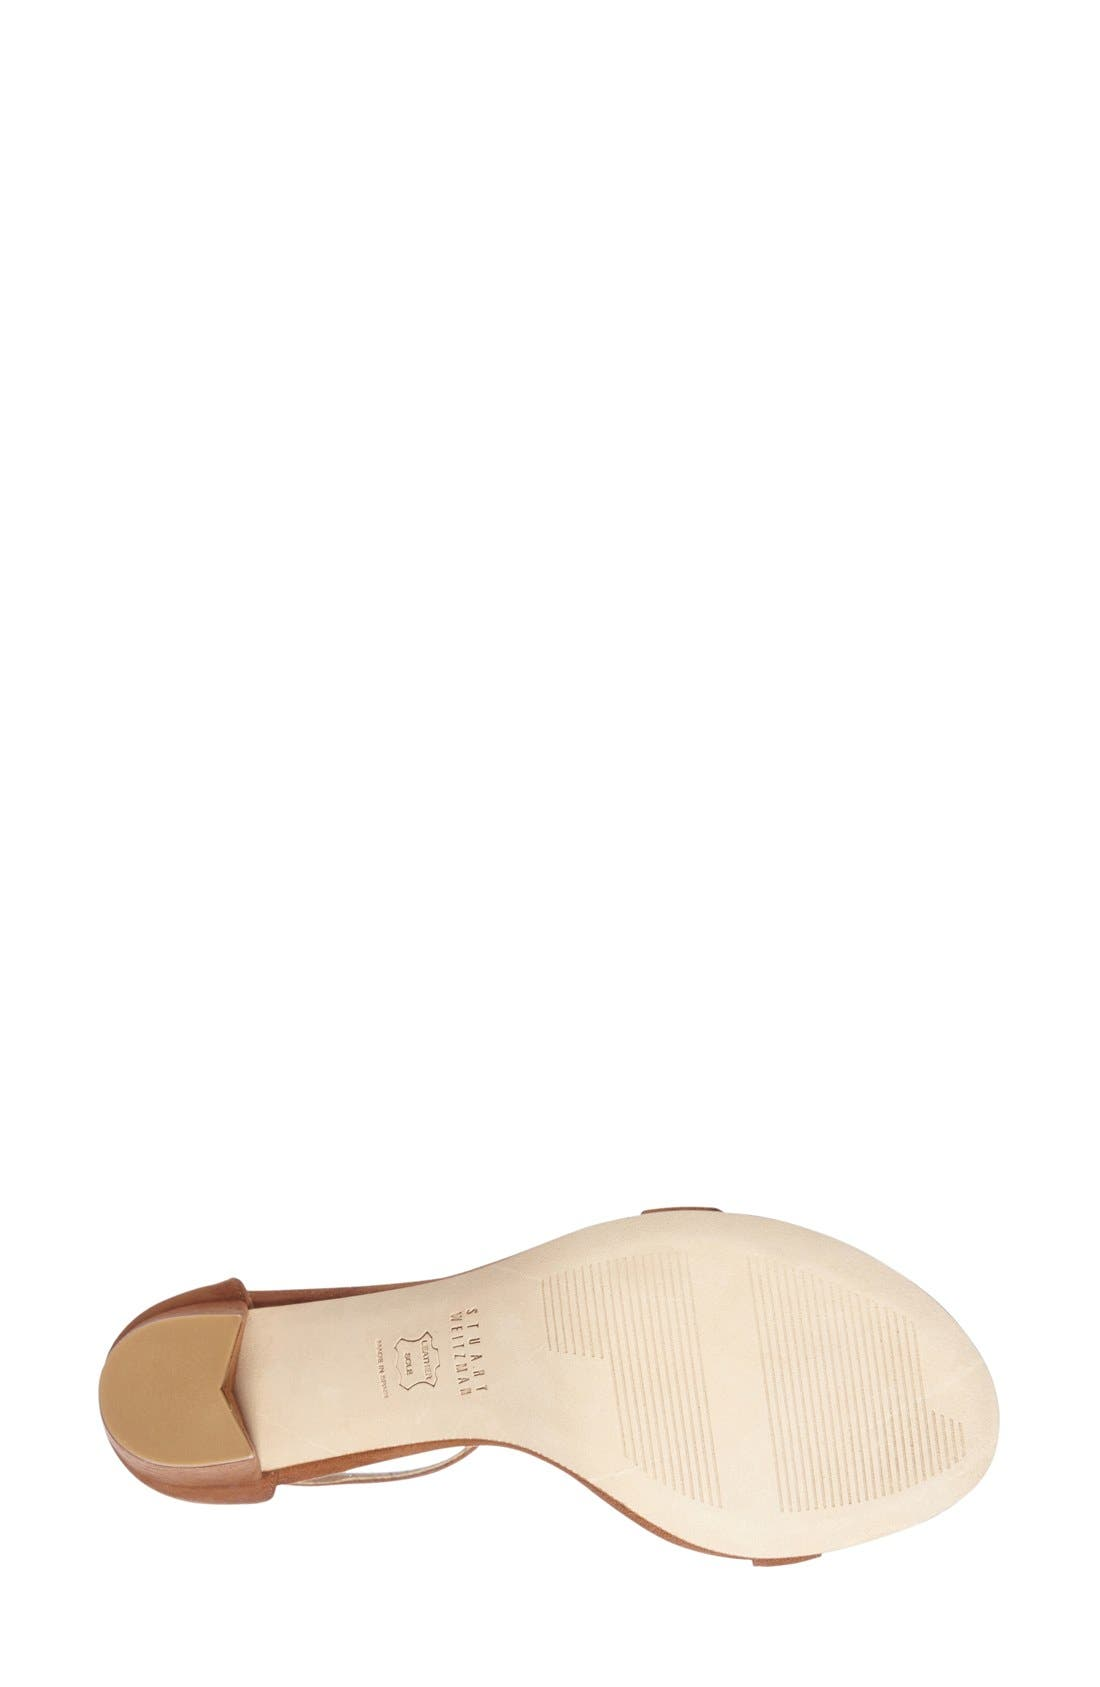 NearlyNude Ankle Strap Sandal,                             Alternate thumbnail 98, color,